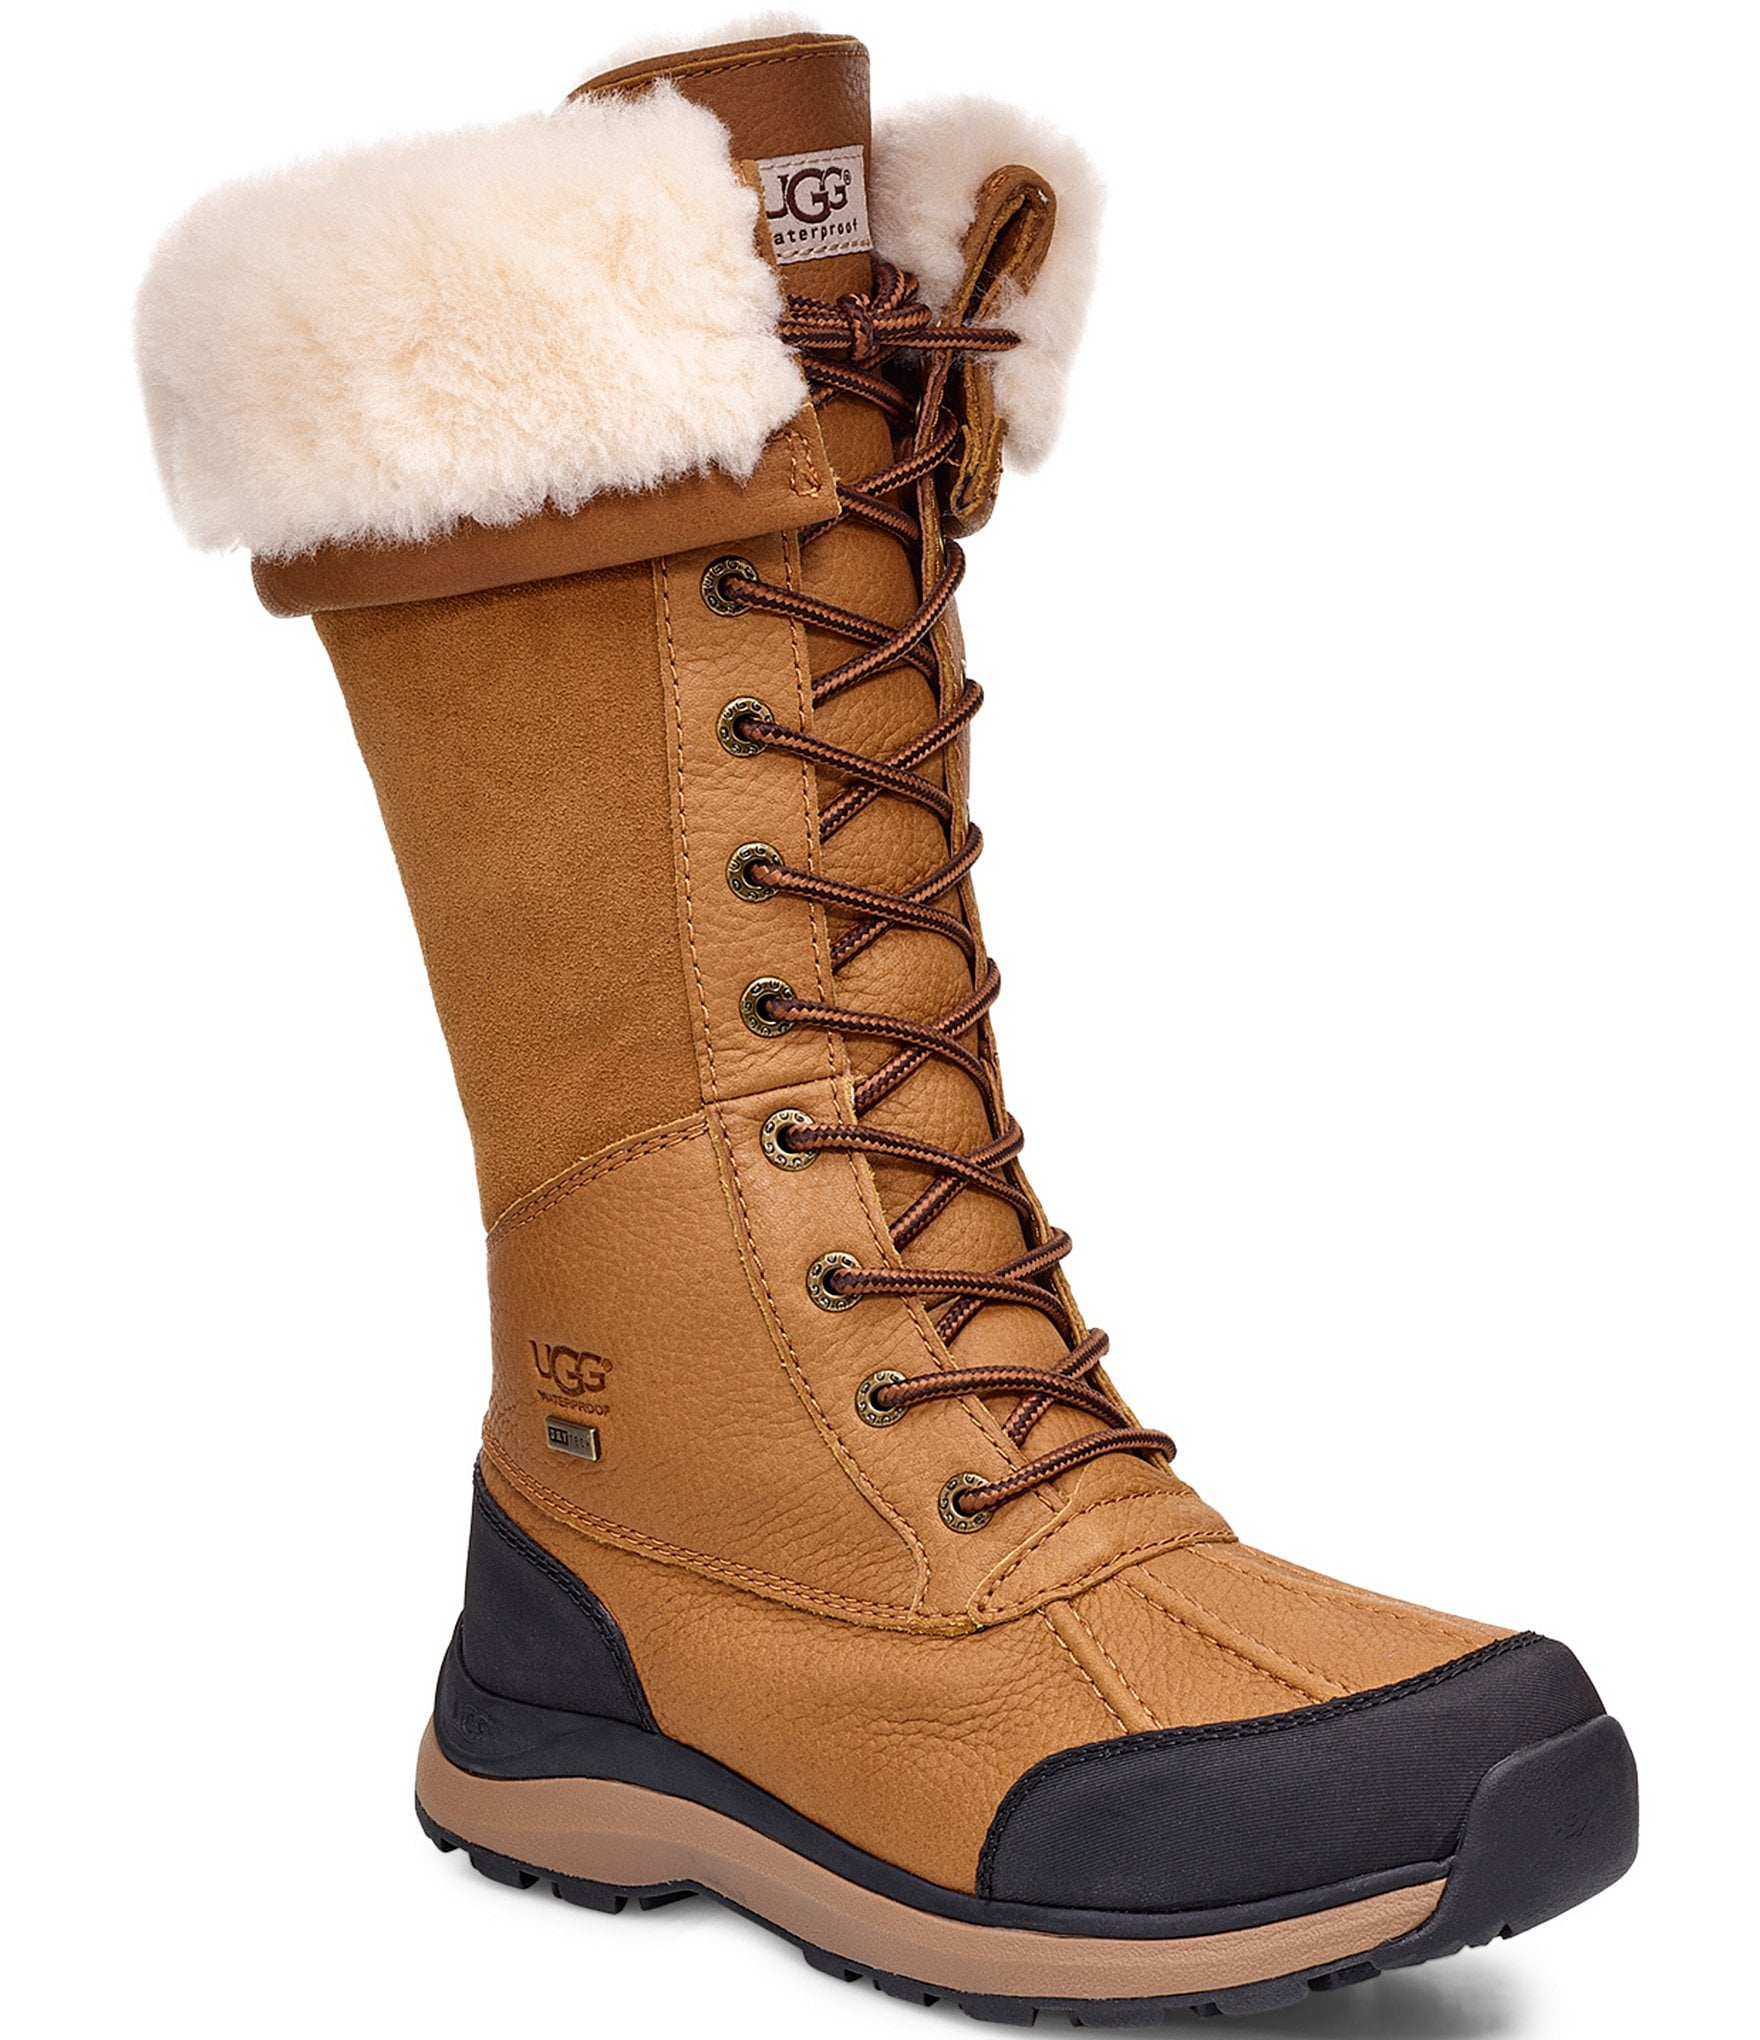 Ugg 174 Adirondack Waterproof Tall Iii Winter Boots Dillard S